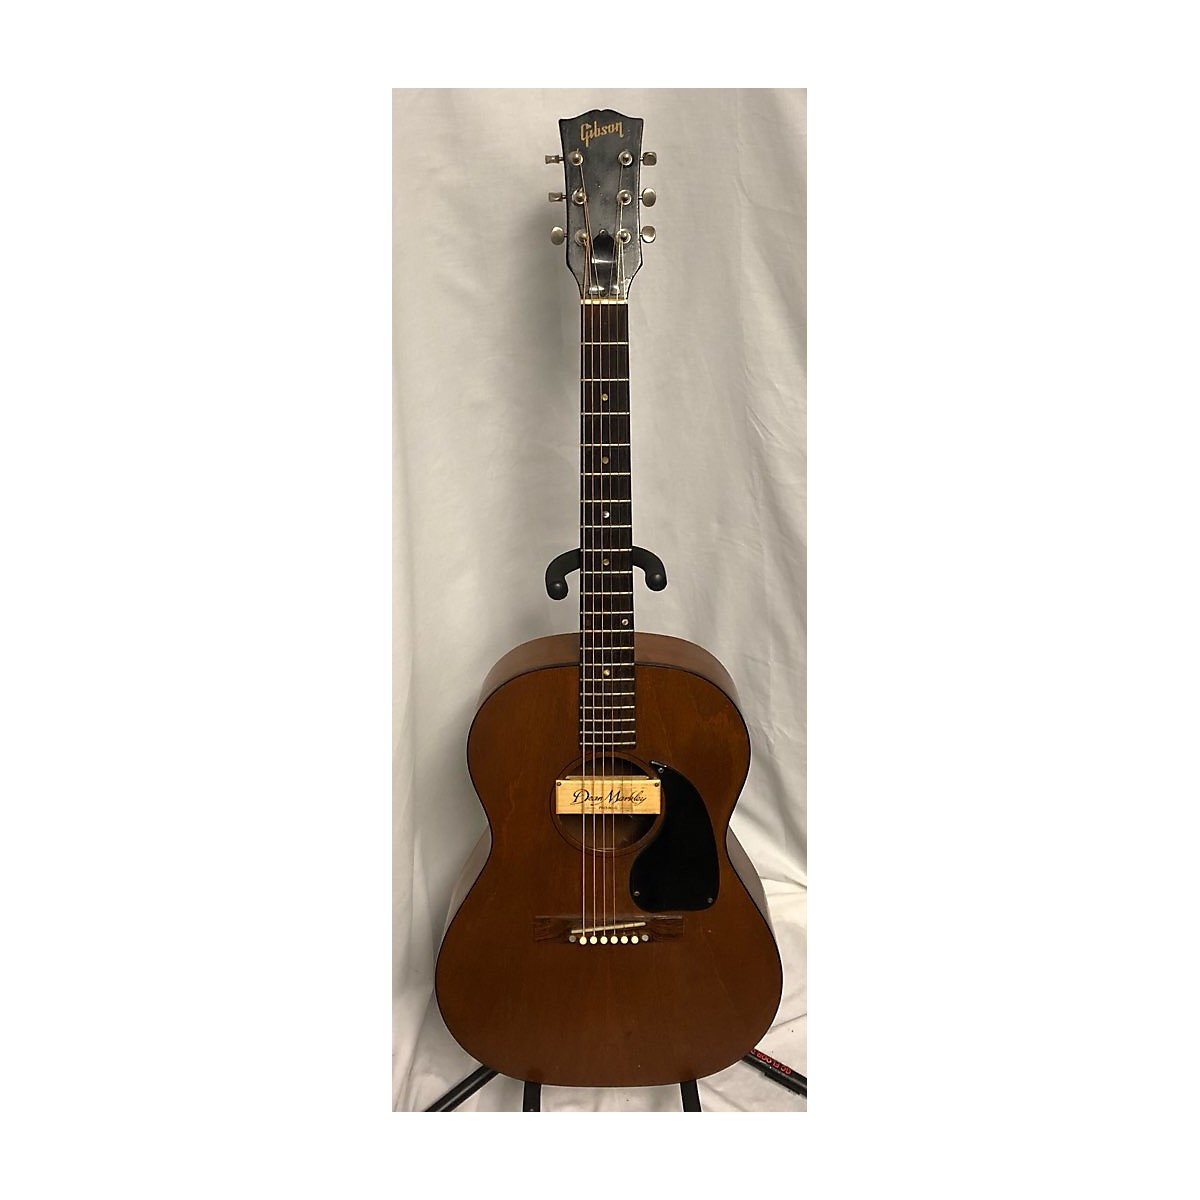 Gibson 1962 B-25 Acoustic Guitar